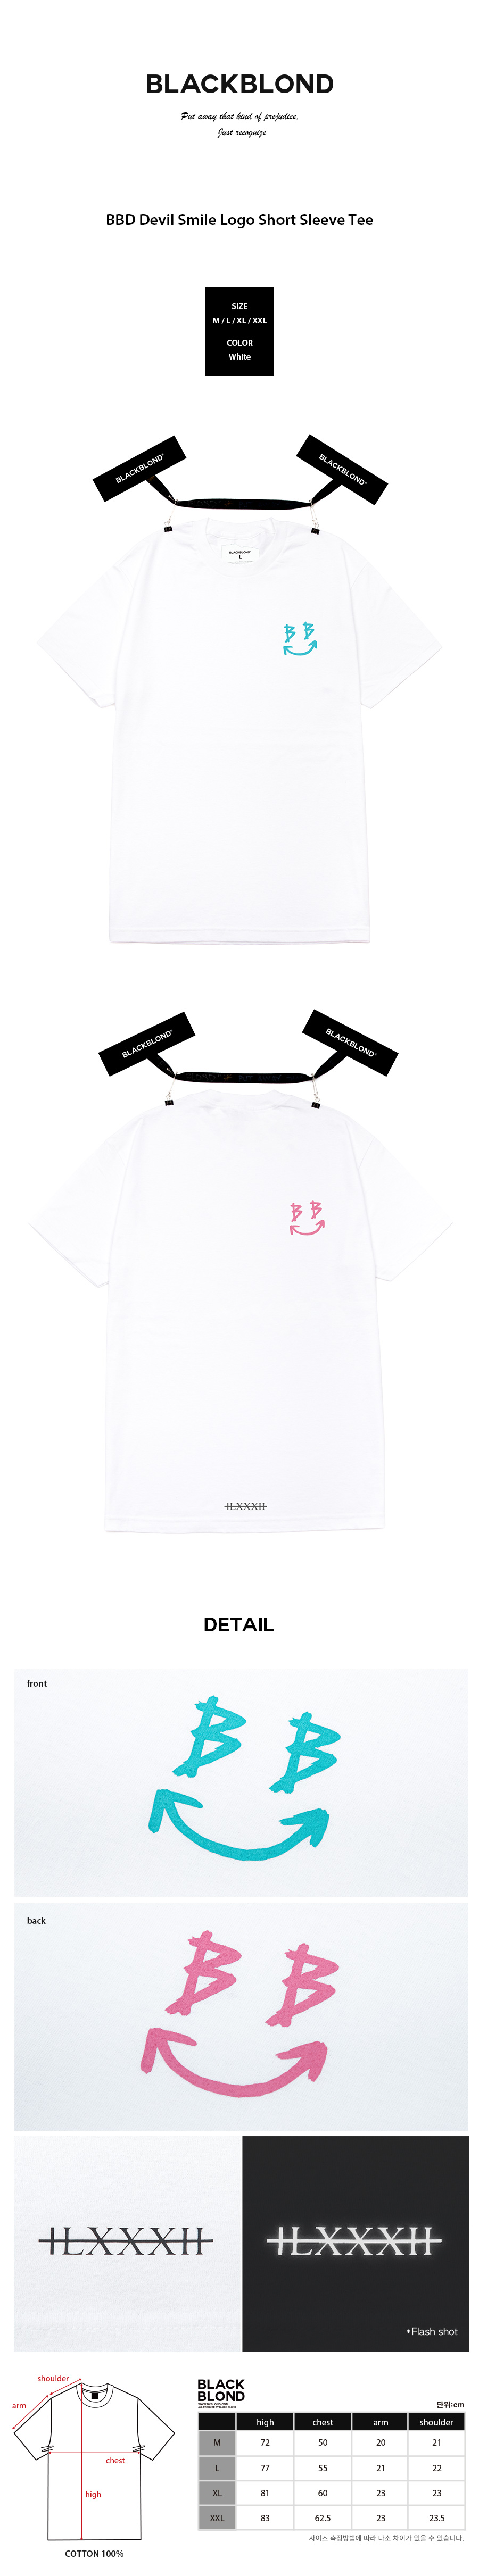 BLACKBLOND - BBD Devil Smile Logo Short Sleeve Tee (White)